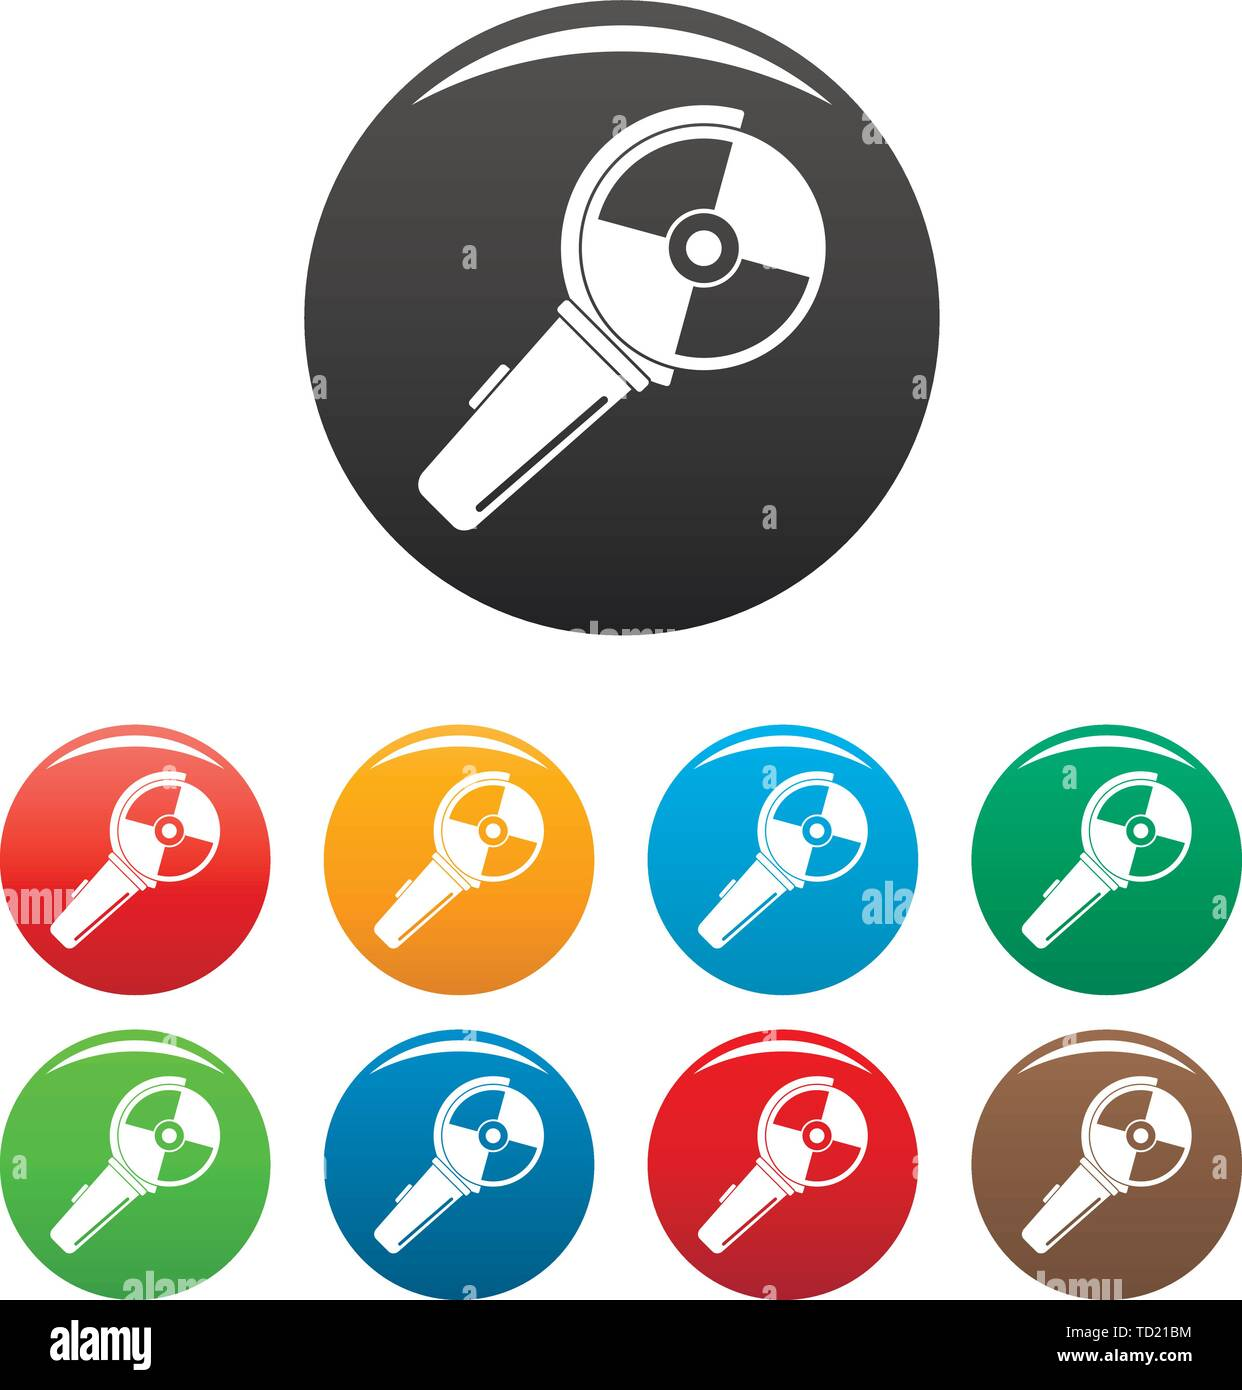 Angle grinder icons set 9 color vector isolated on white for any design - Stock Image